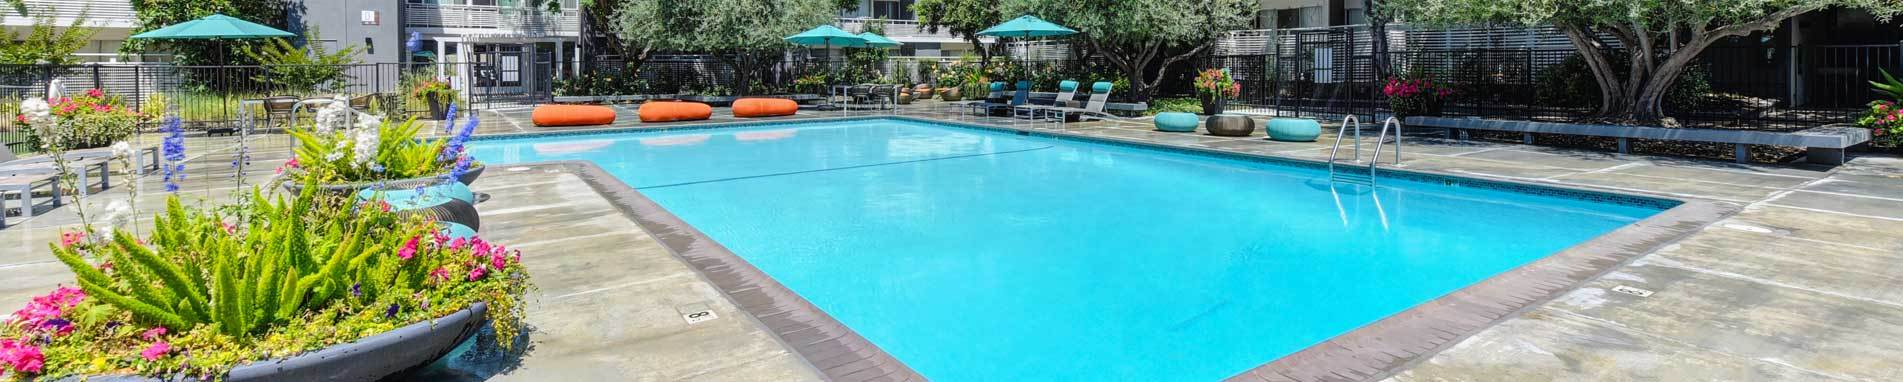 Apartments in Thousand Oaks